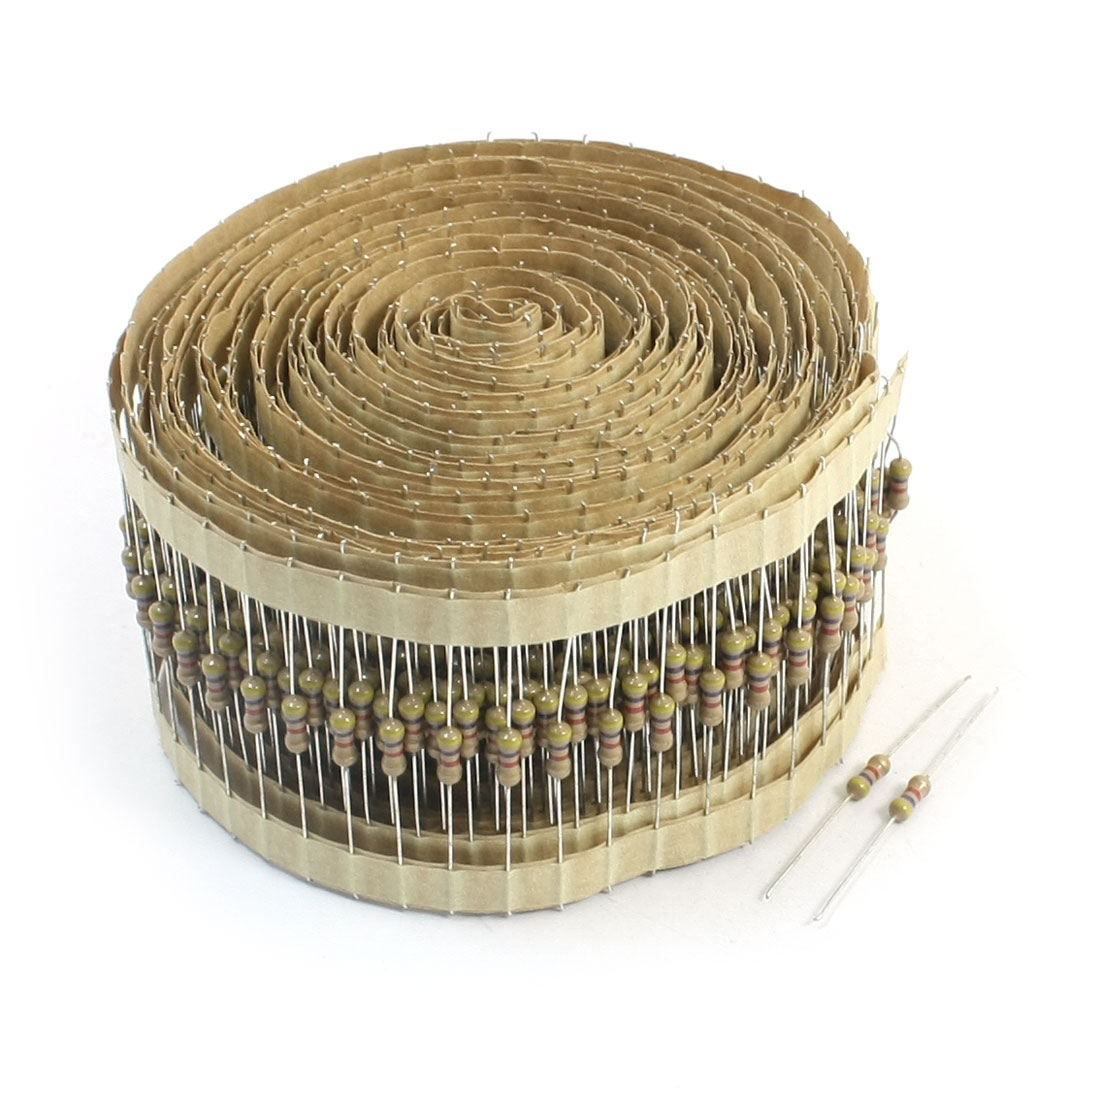 800pcs 1/4W 4.7K Ohm Metal Axial Leads Carbon Film Resistors 40mm Long